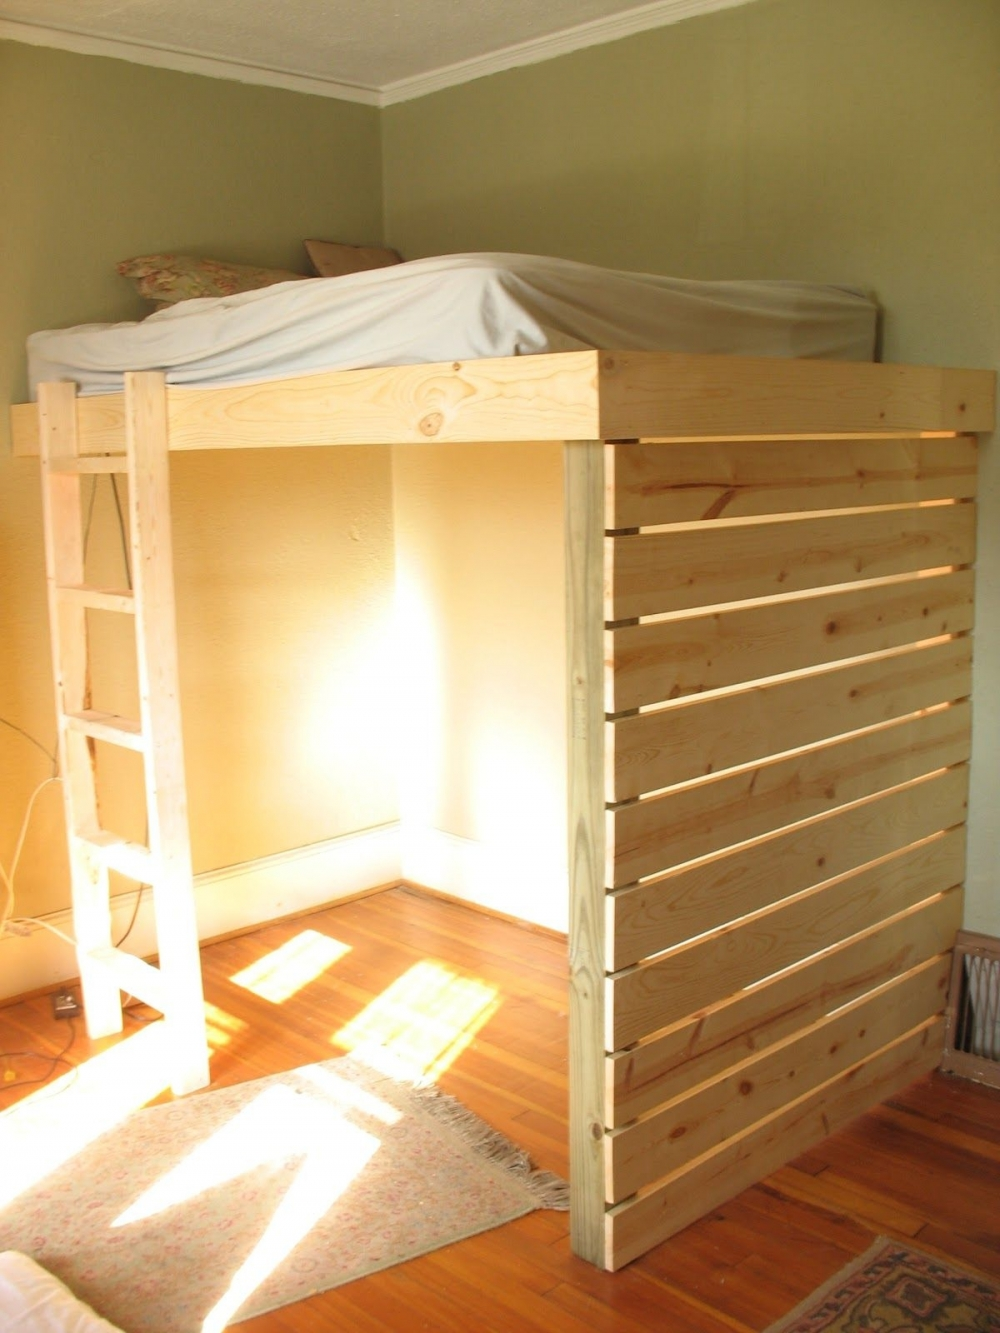 Irresistible Bunk Bed with Desk and Drawers On